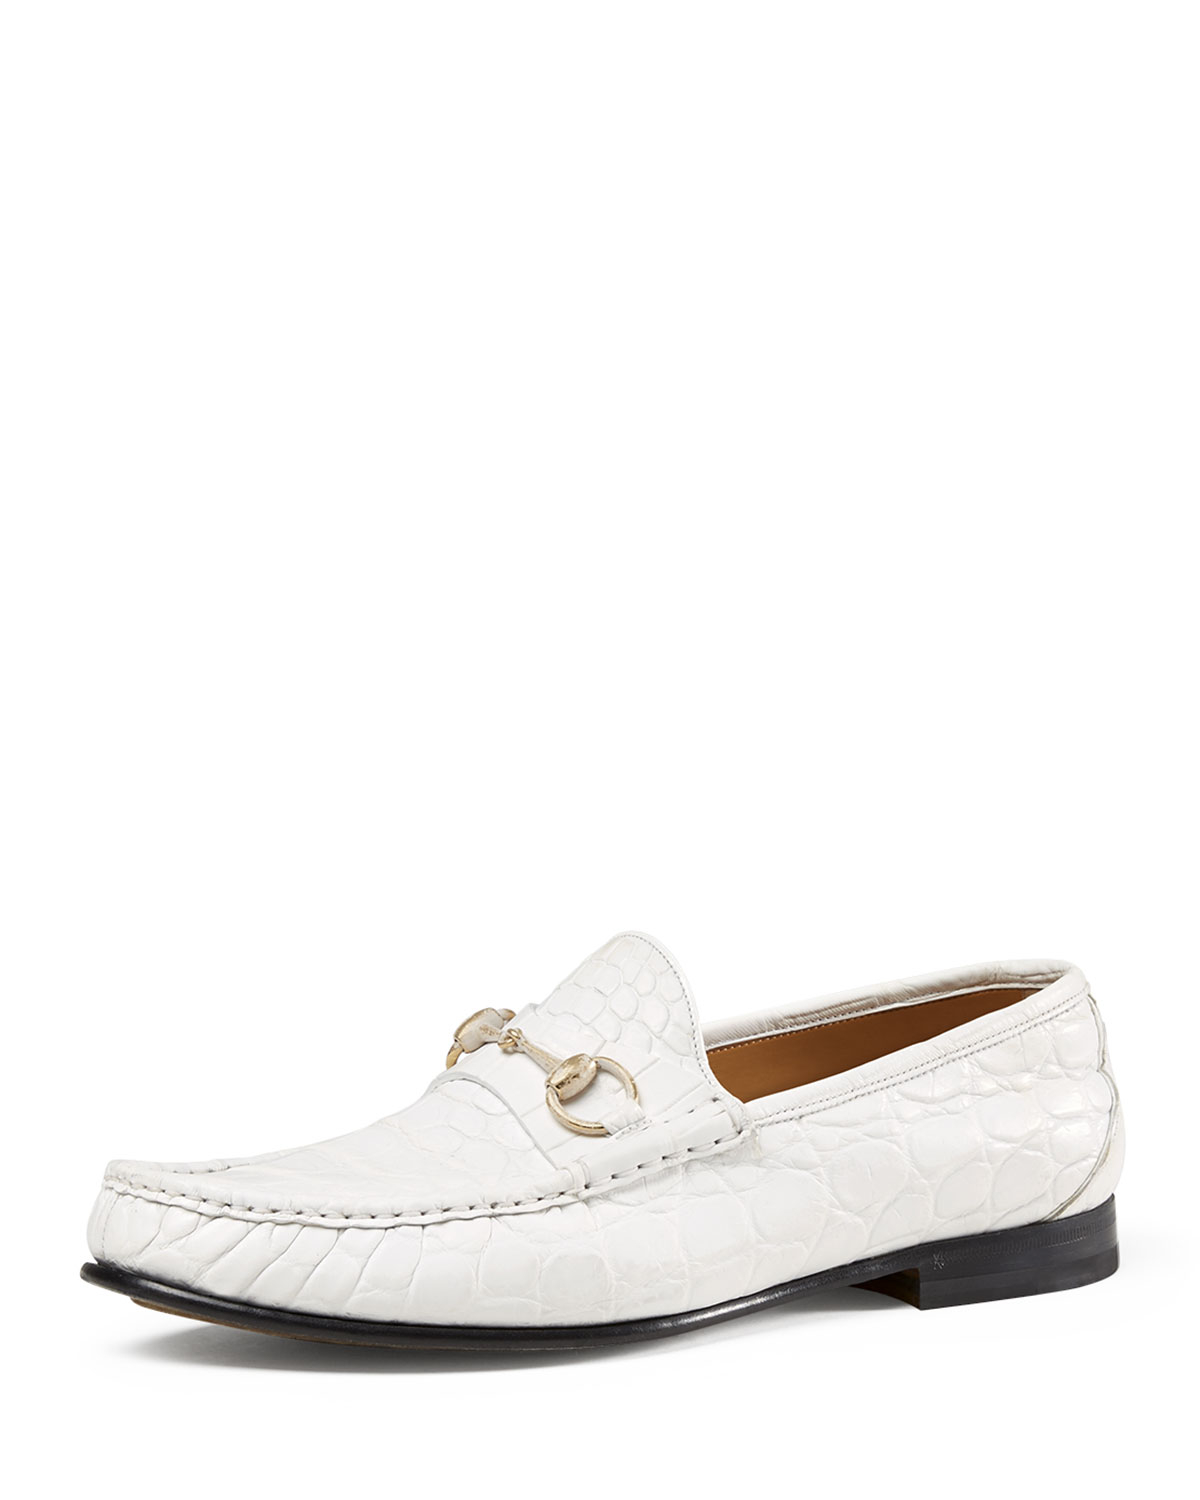 White Loafers Men | Www.pixshark.com - Images Galleries With A Bite!